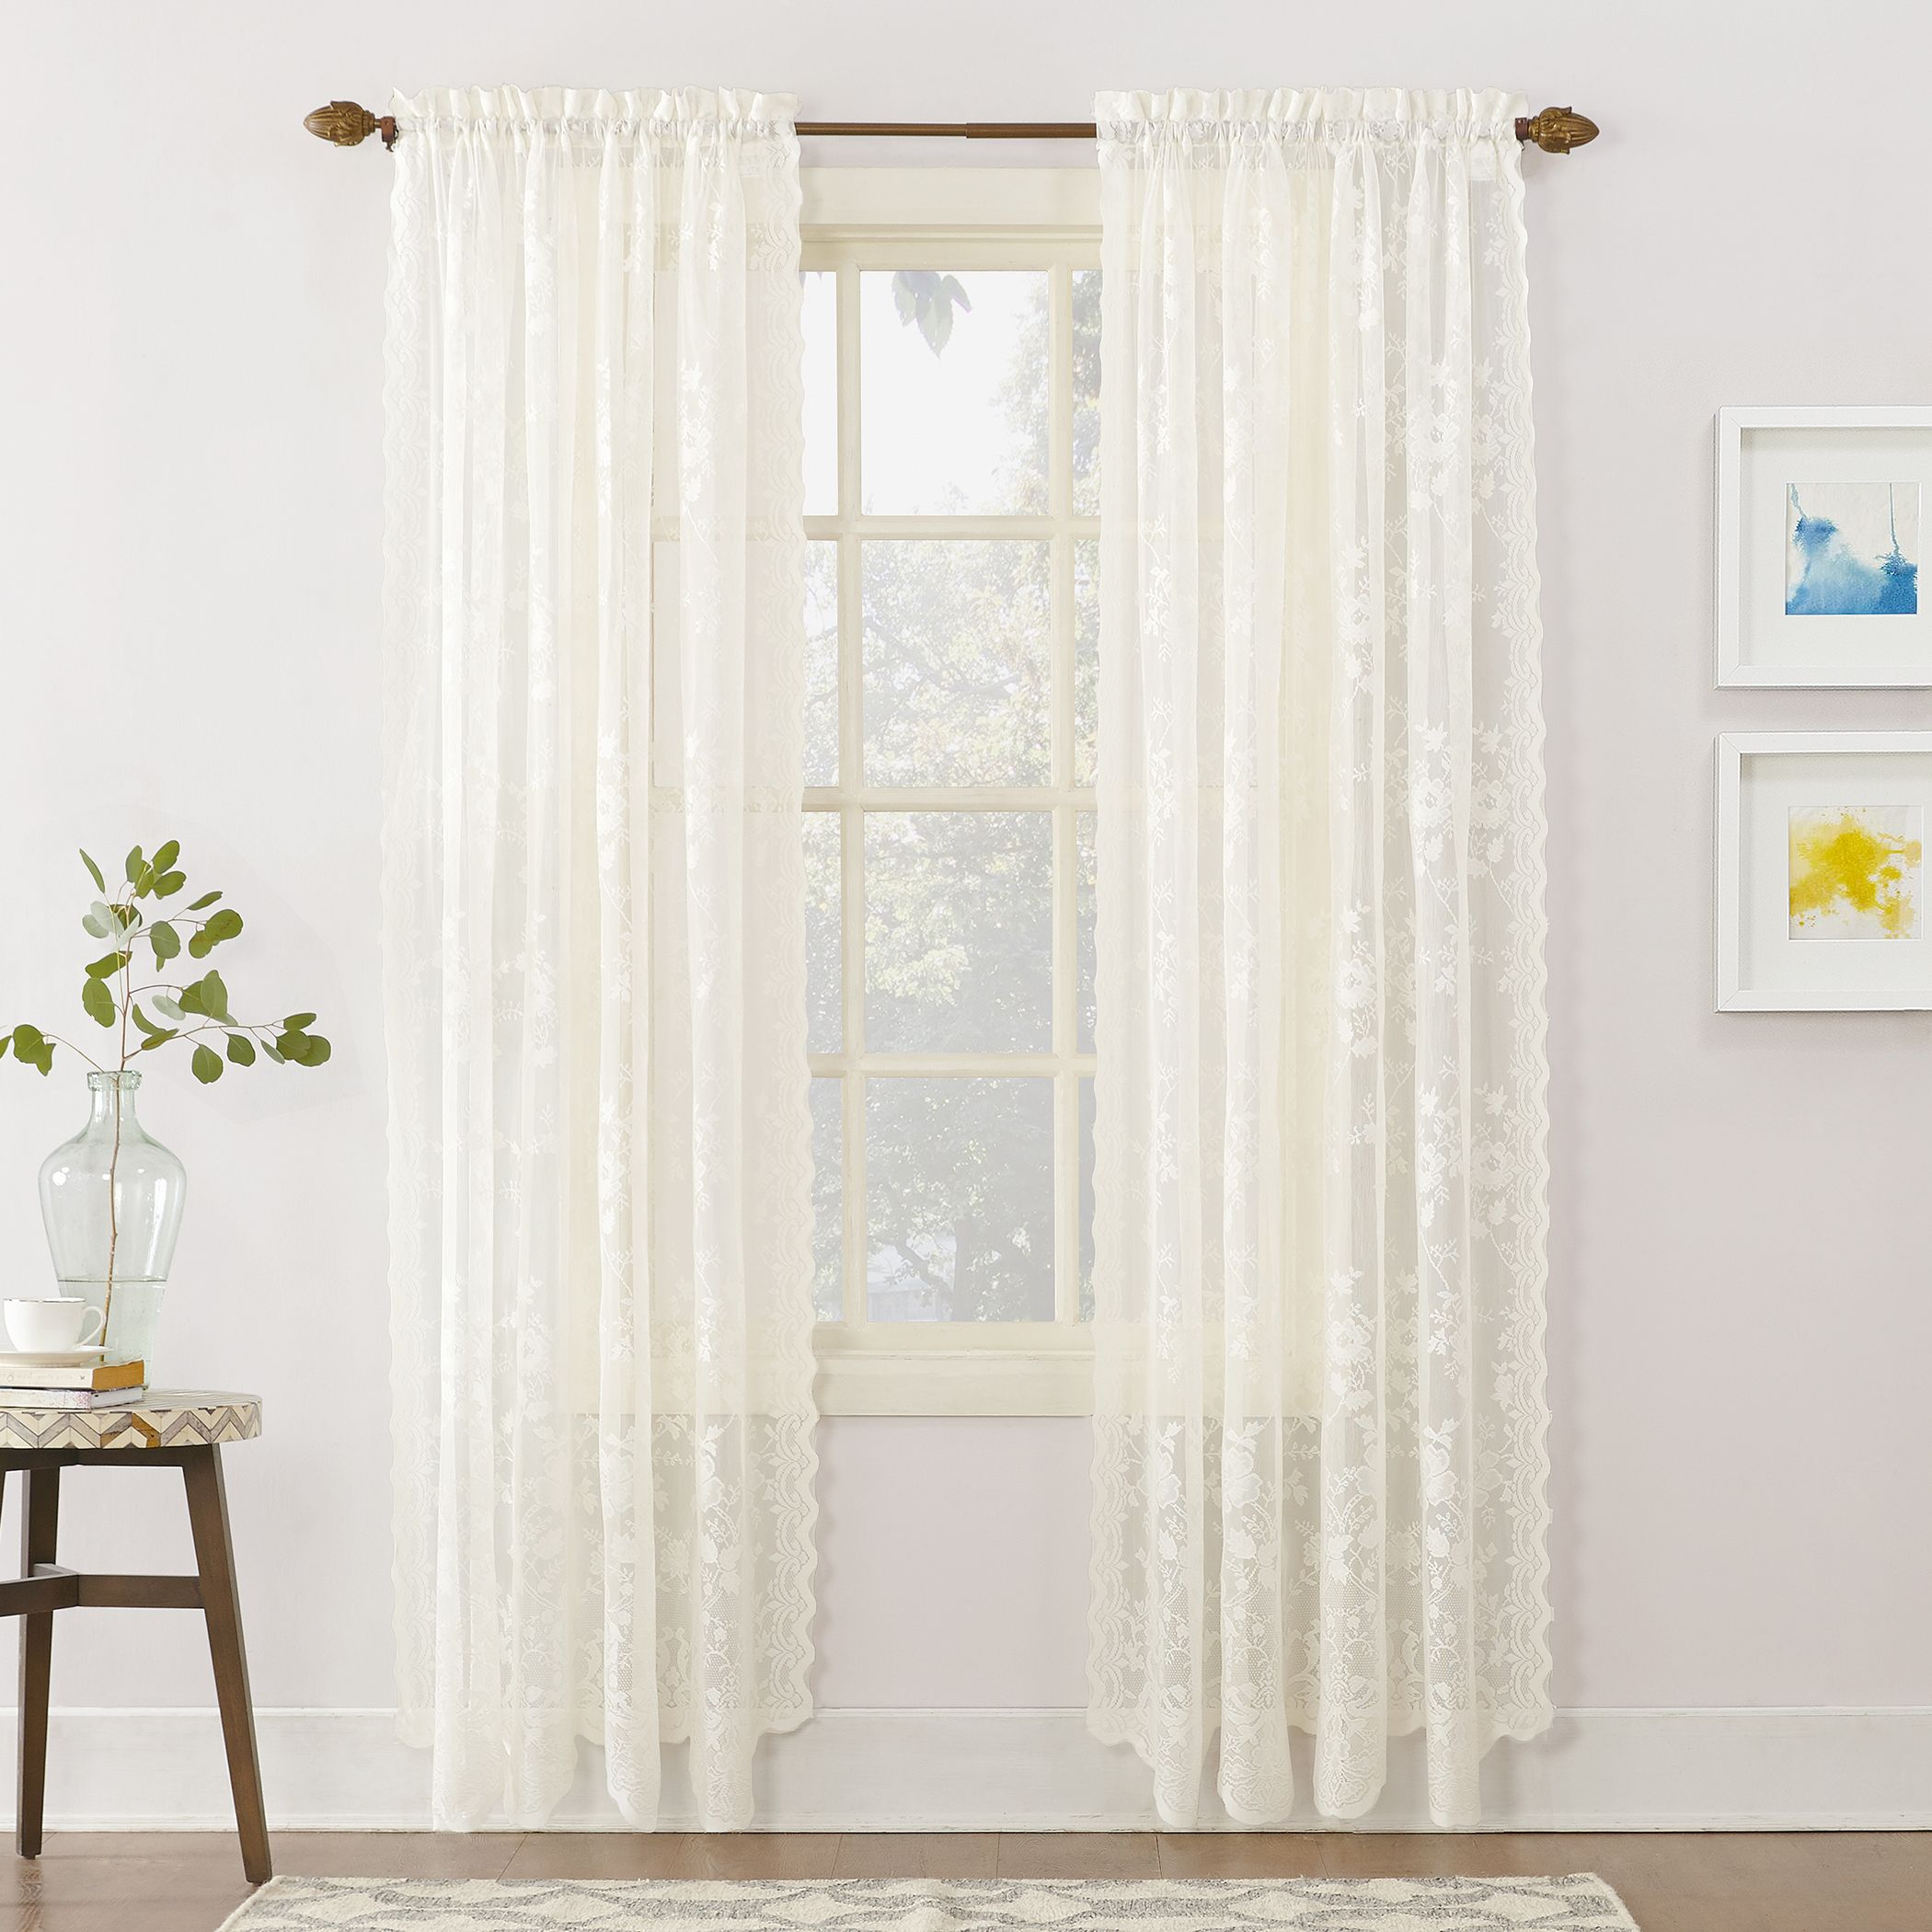 Home In 2020 White Paneling Panel Curtains Lace Window